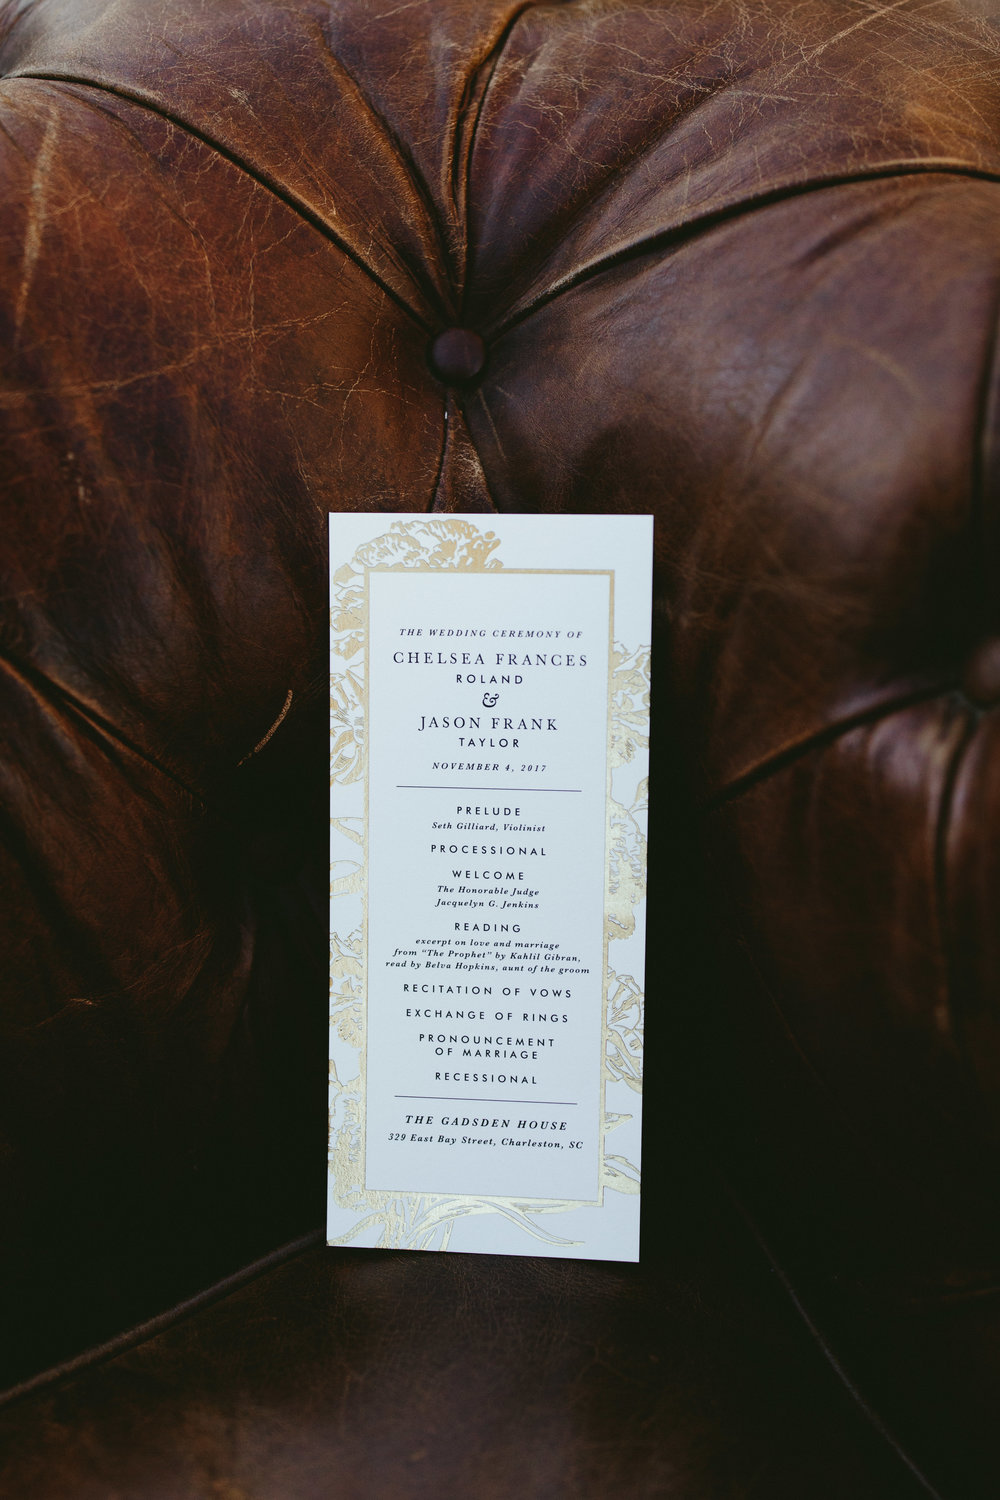 Wedding program inspiration, classy wedding program inspiration, gold wedding program, gold wedding stationary,Philadelphia wedding, destination wedding, Brooklyn wedding, Brooklyn elopement, Philadelphia elopement, Gadsden house Charleston South Carolina, southern wedding inspiration, unique wedding inspiration, wedding inspiration, destination wedding inspiration, wedding ideas, romantic wedding inspiration, classy wedding ideas